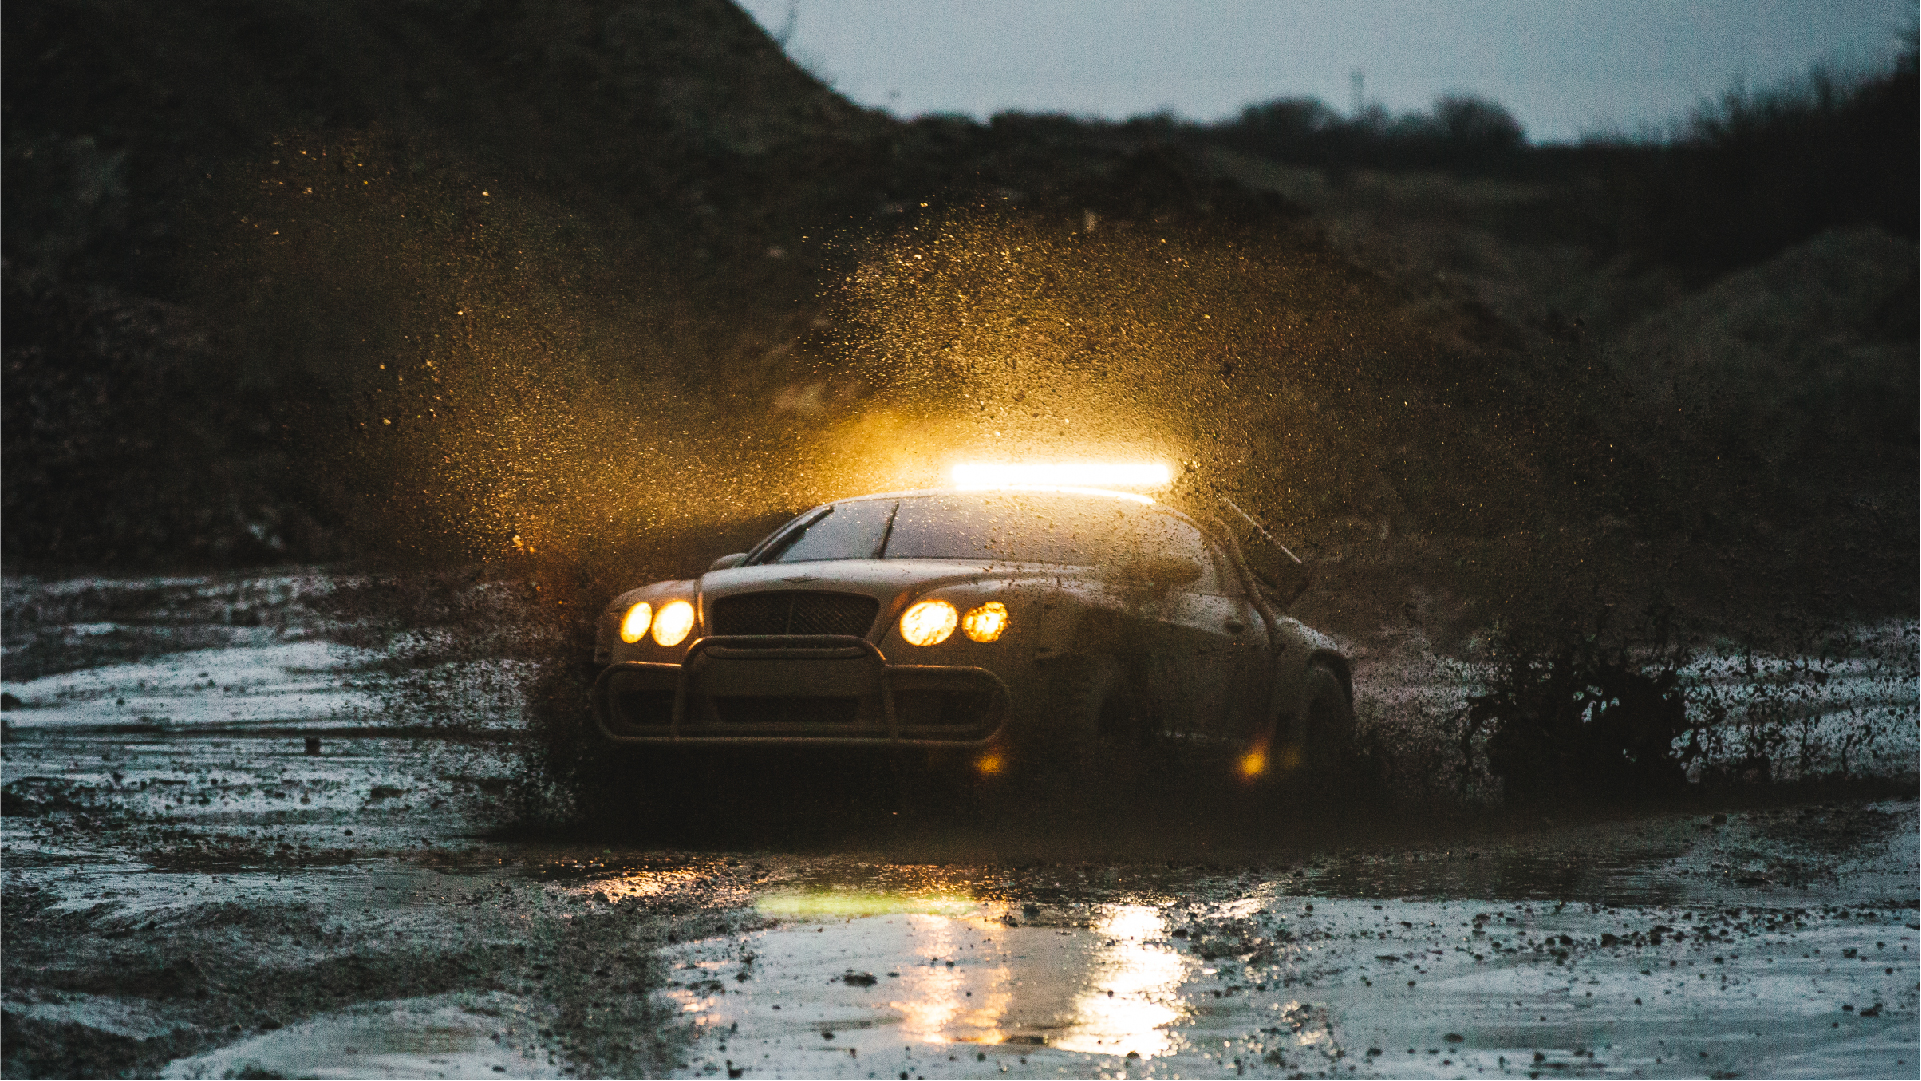 supercar megabuild - bentley supercar driving through mud